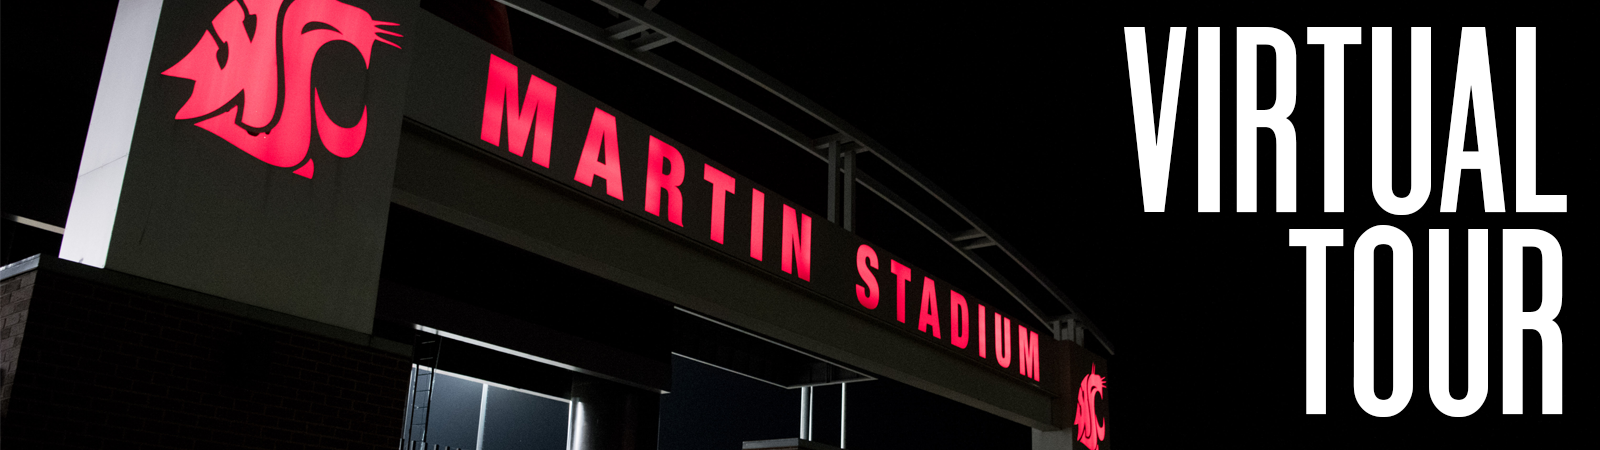 Virtual tour of Martin Stadium